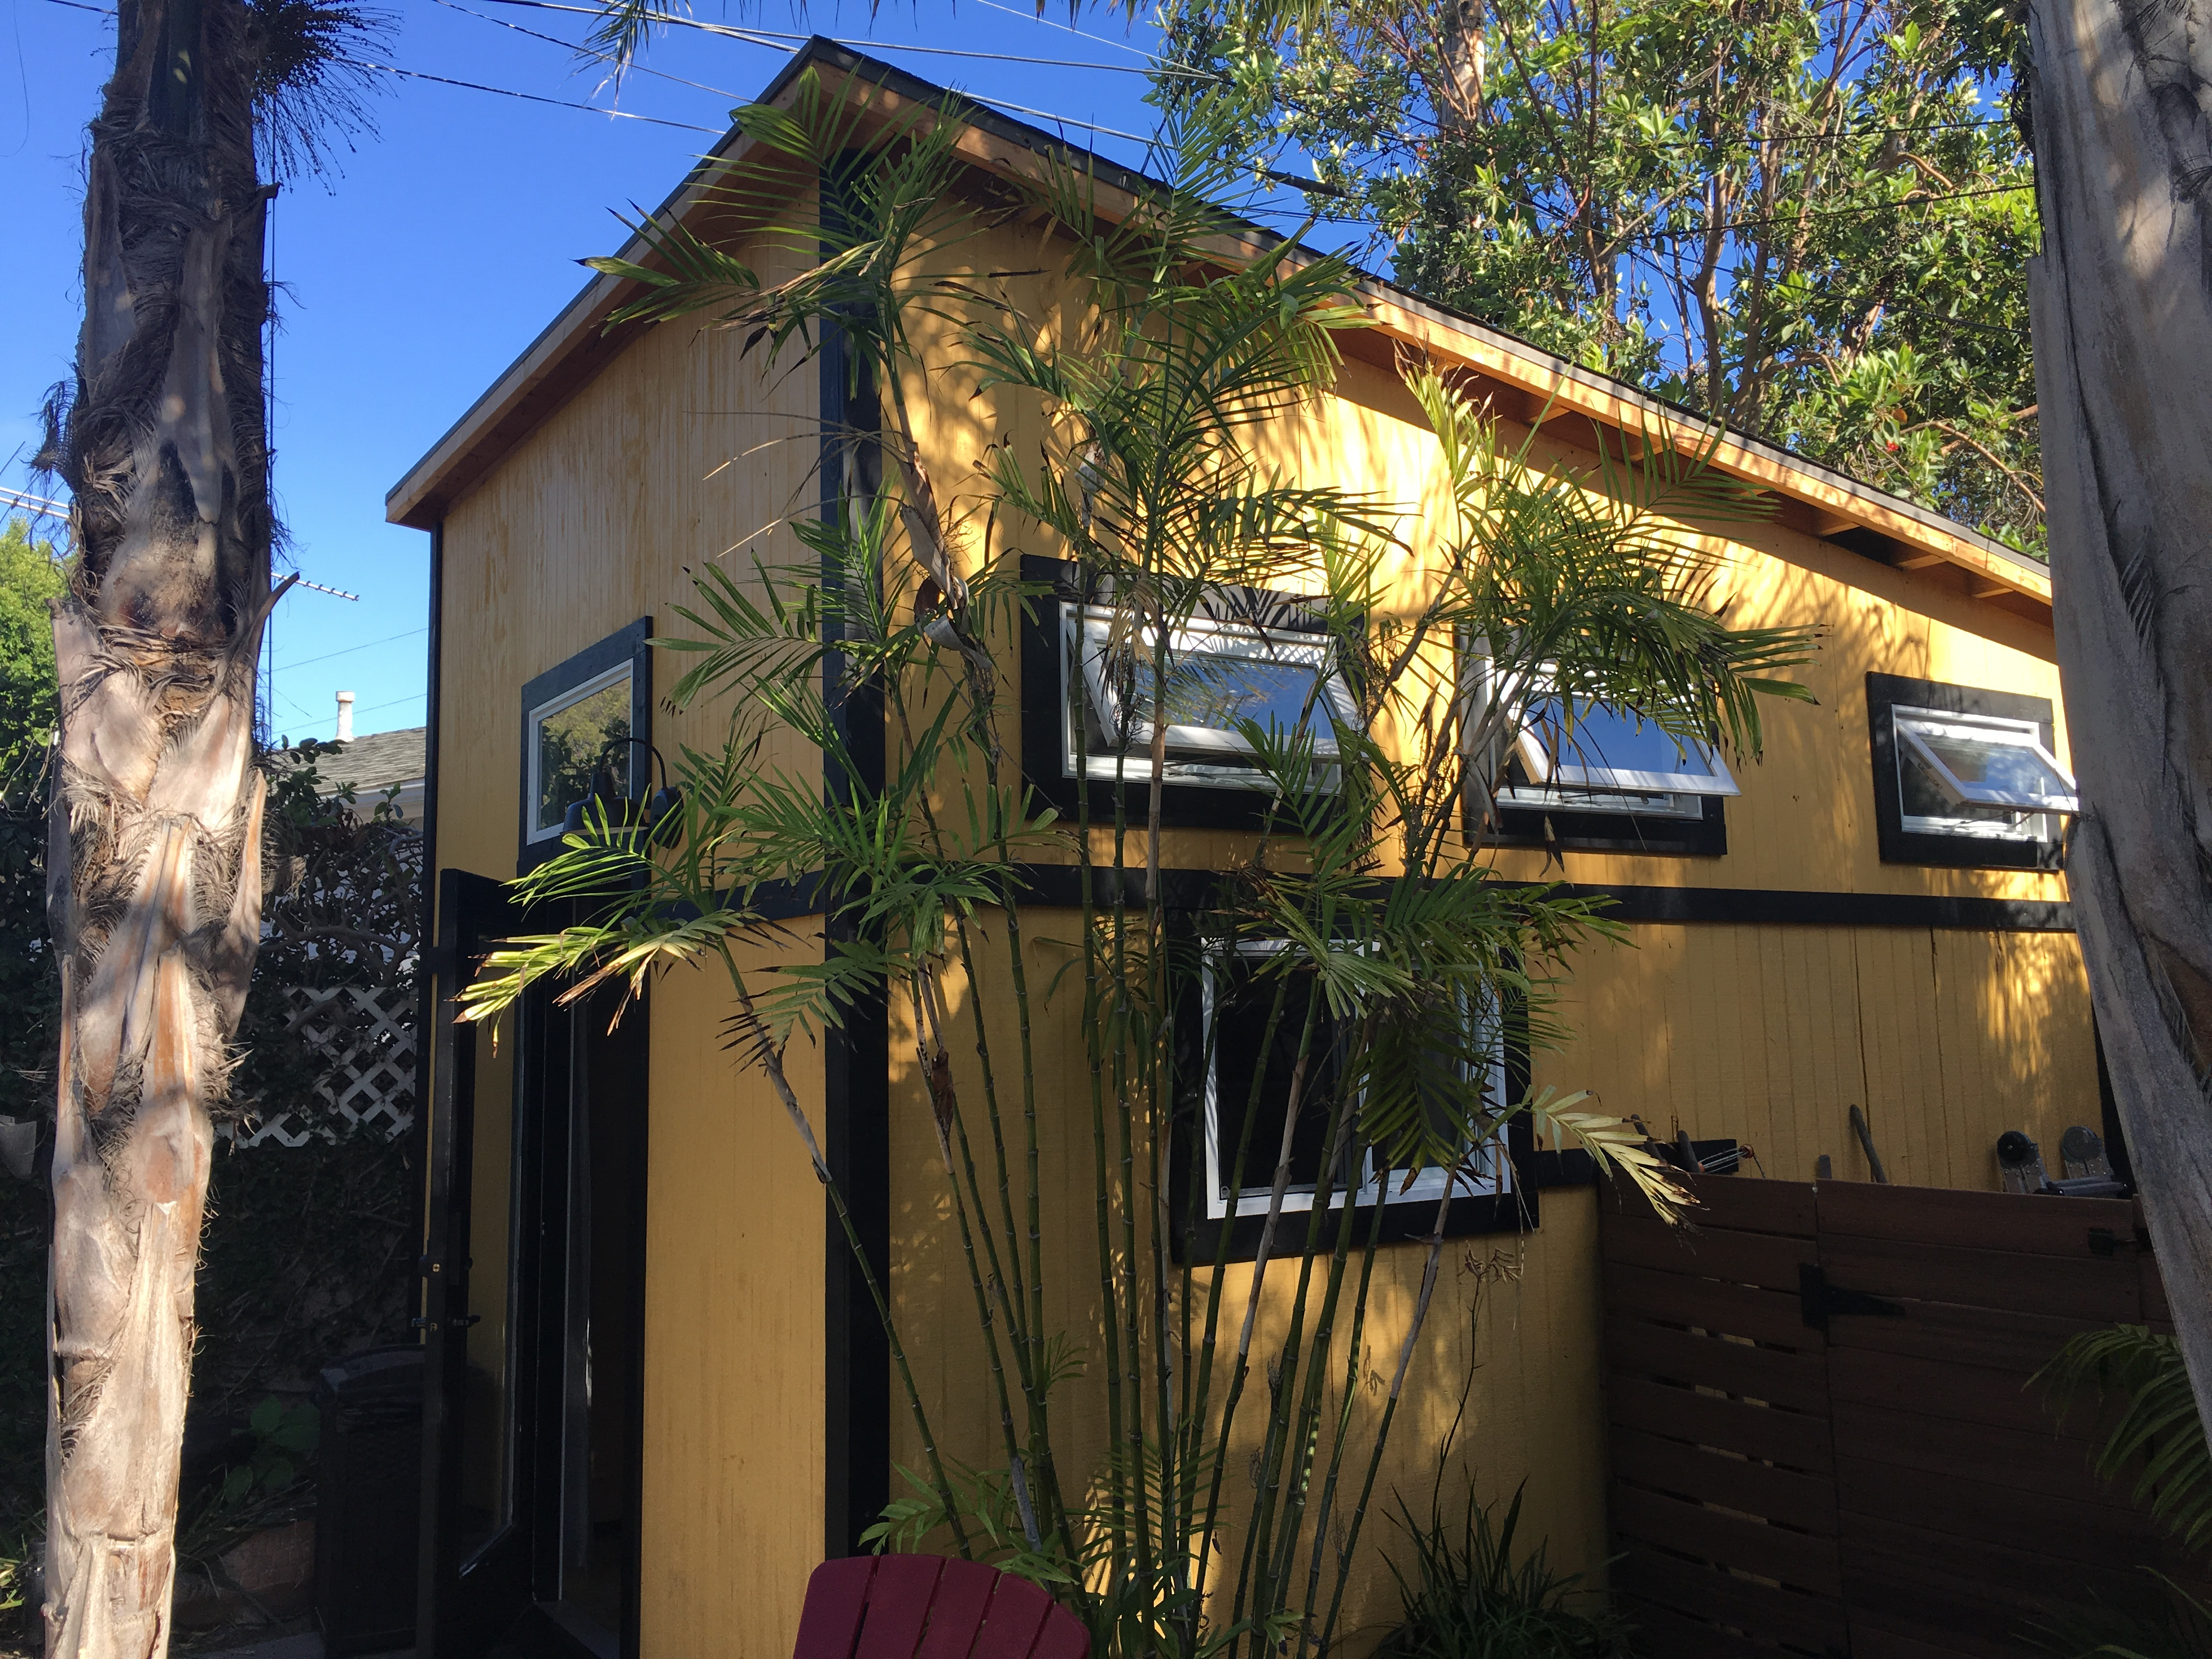 Los Angeles Tiny Houses Curbed LA